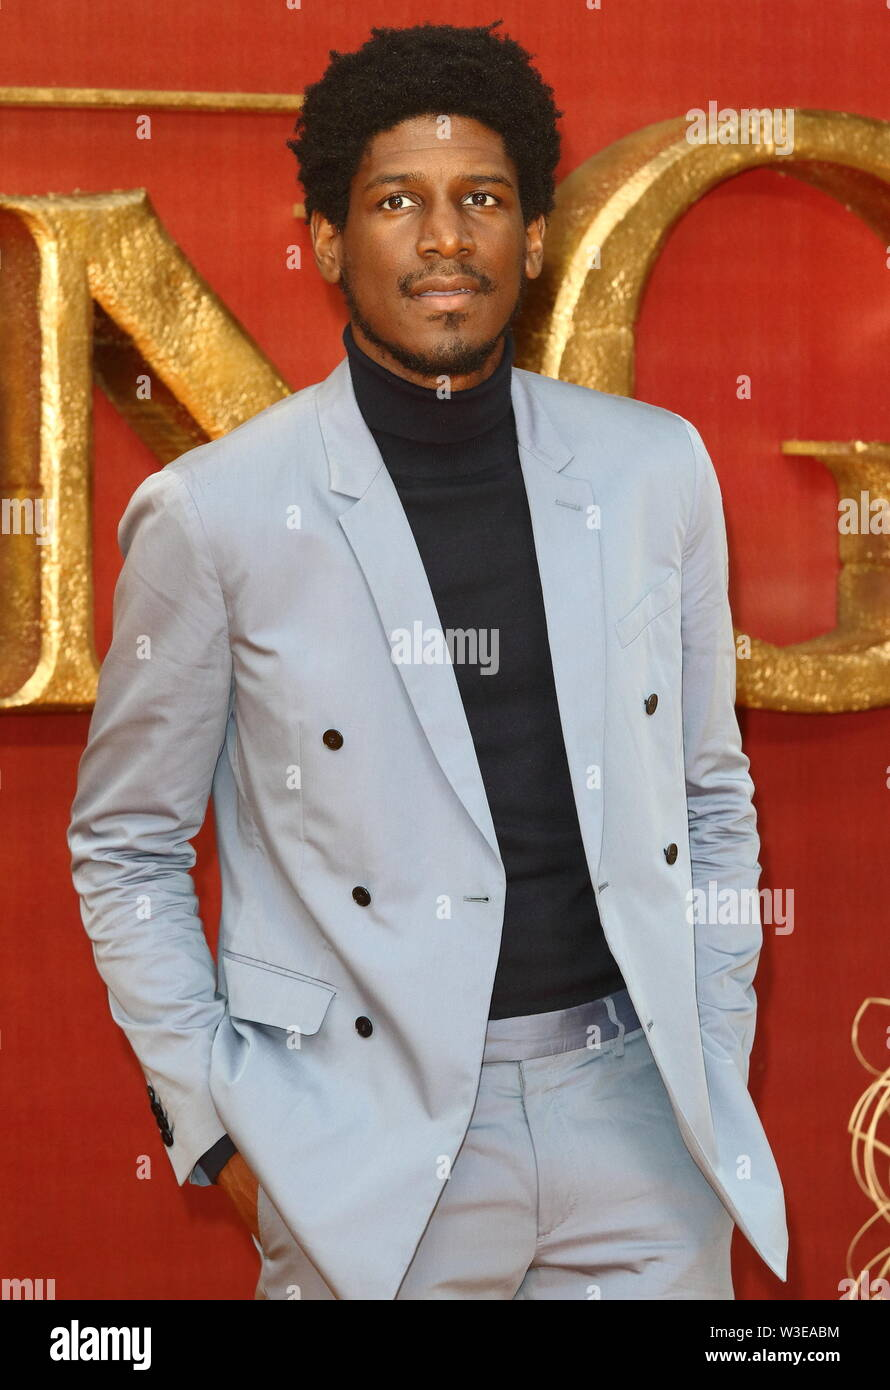 Labrinth attends the European Premiere of Disney's The Lion King at the Odeon Luxe cinema, Leicester Square in London. Stock Photo